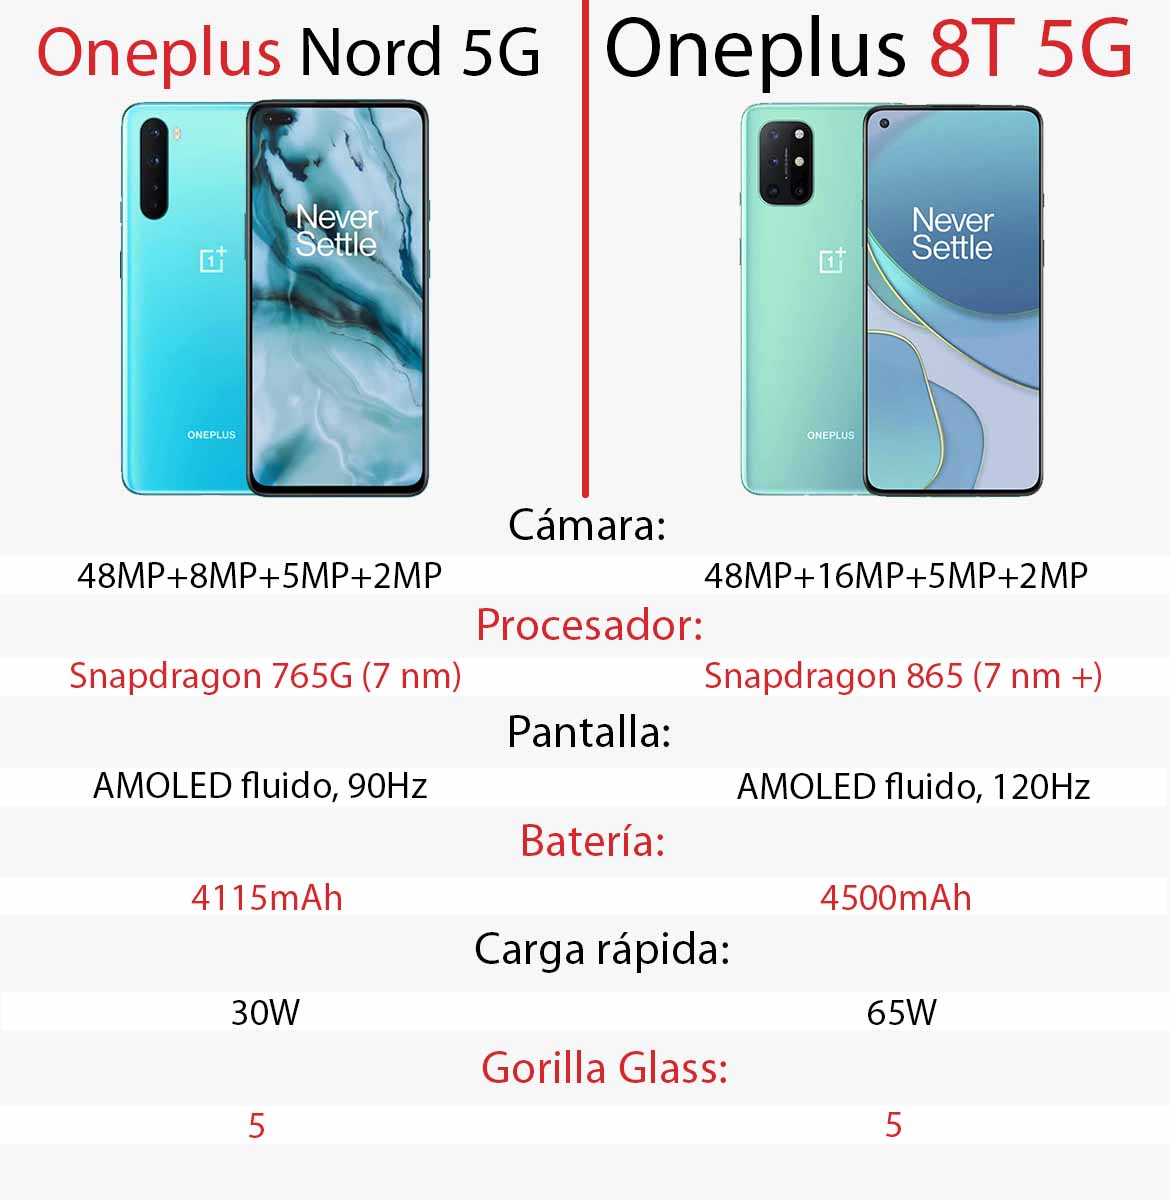 Comparativa Oneplus 8T y Oneplus Nord